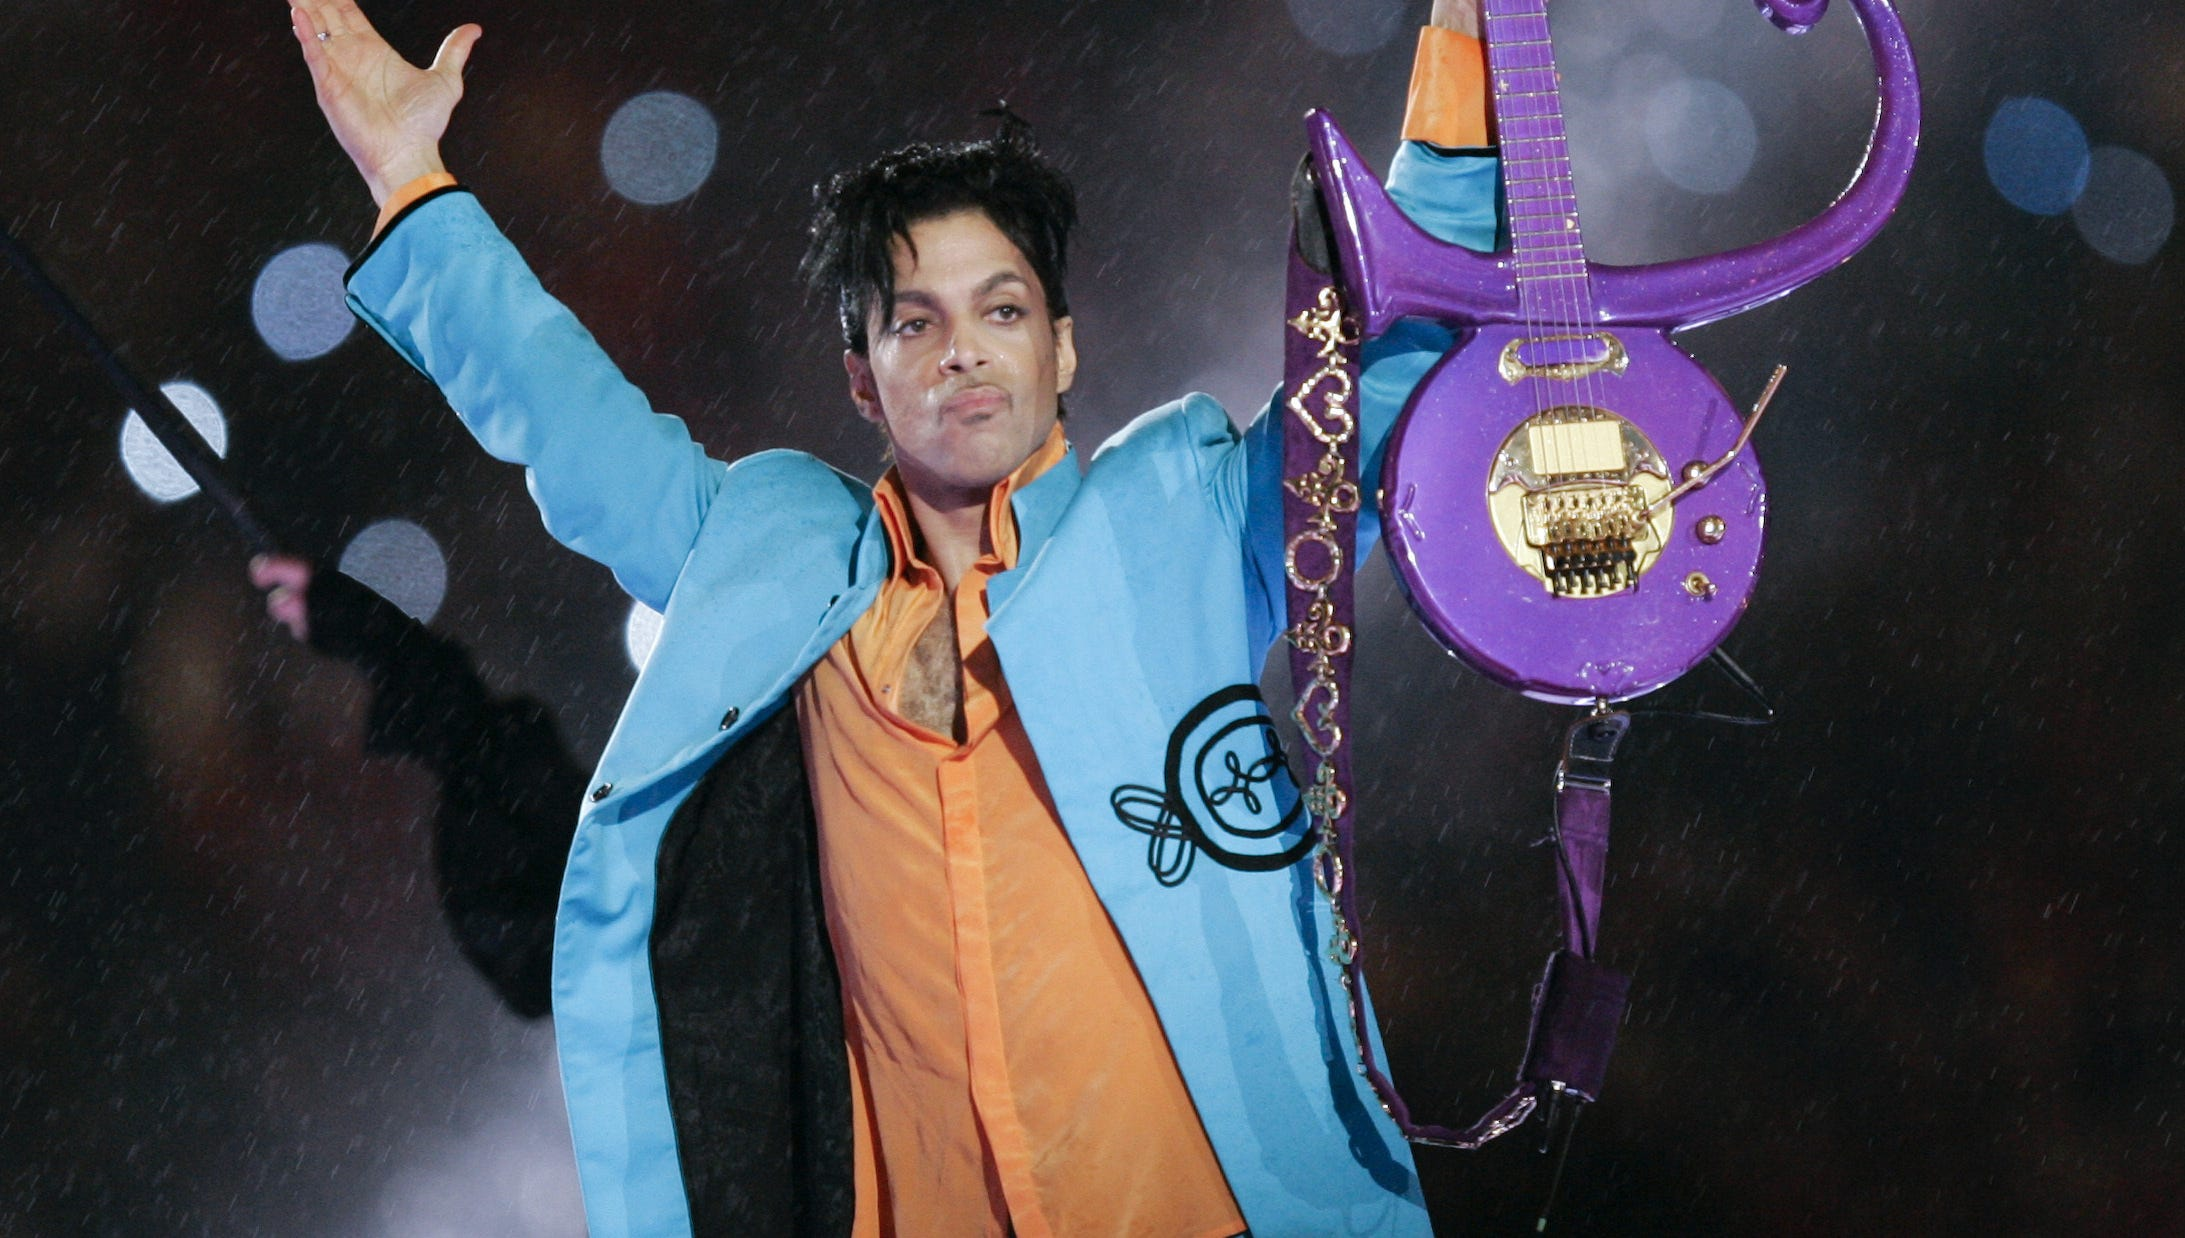 Today in History, April 21: Innovative musician Prince died in 2016